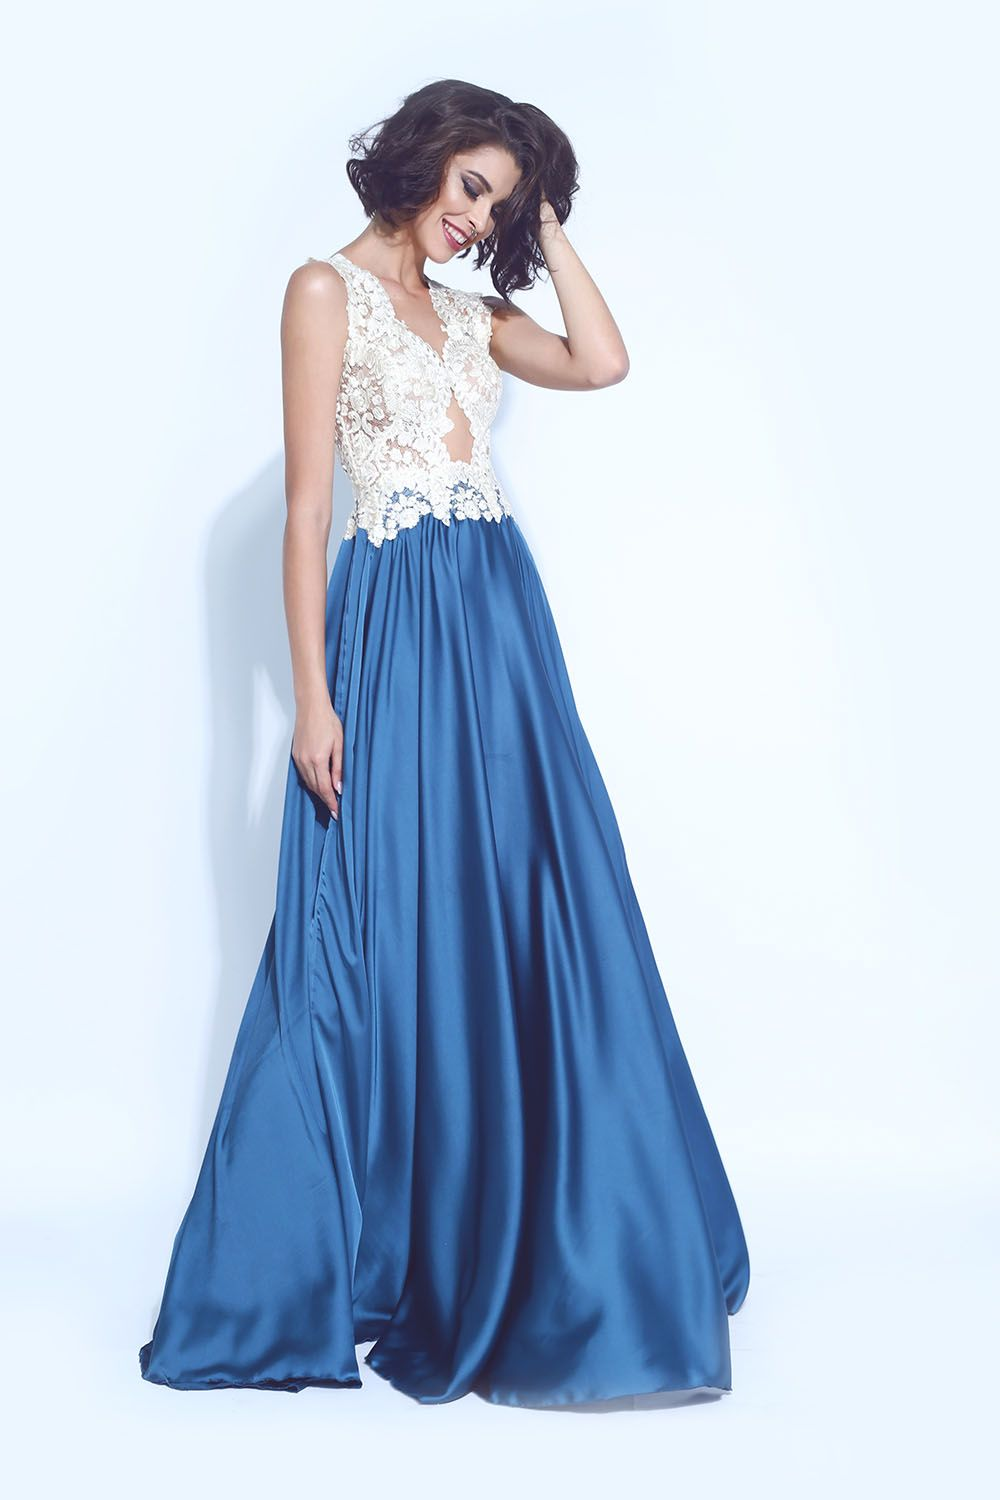 Magnificent Lord And Taylor Prom Dress Photos - All Wedding Dresses ...